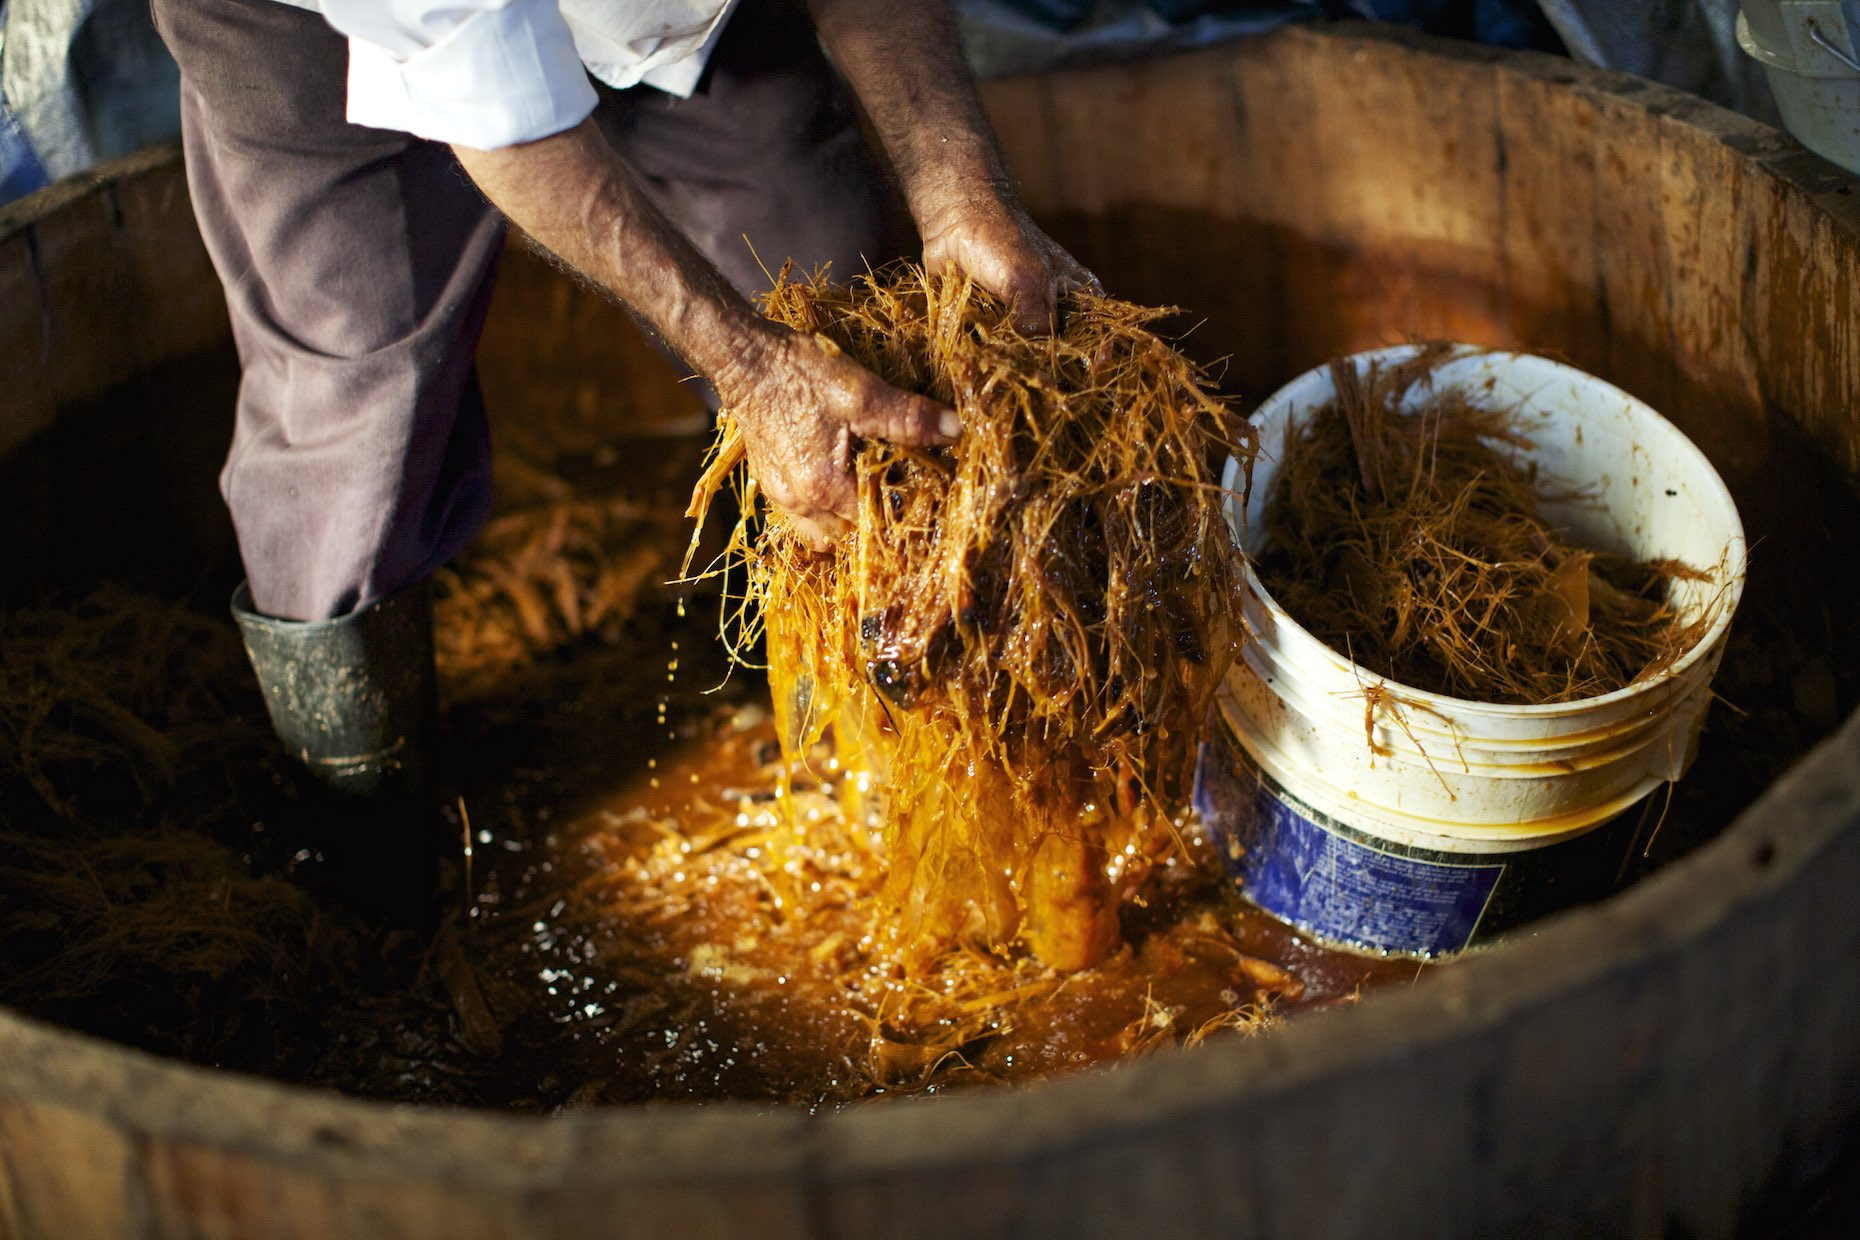 Farmer handling soaked agave fibers in a wood barrel.